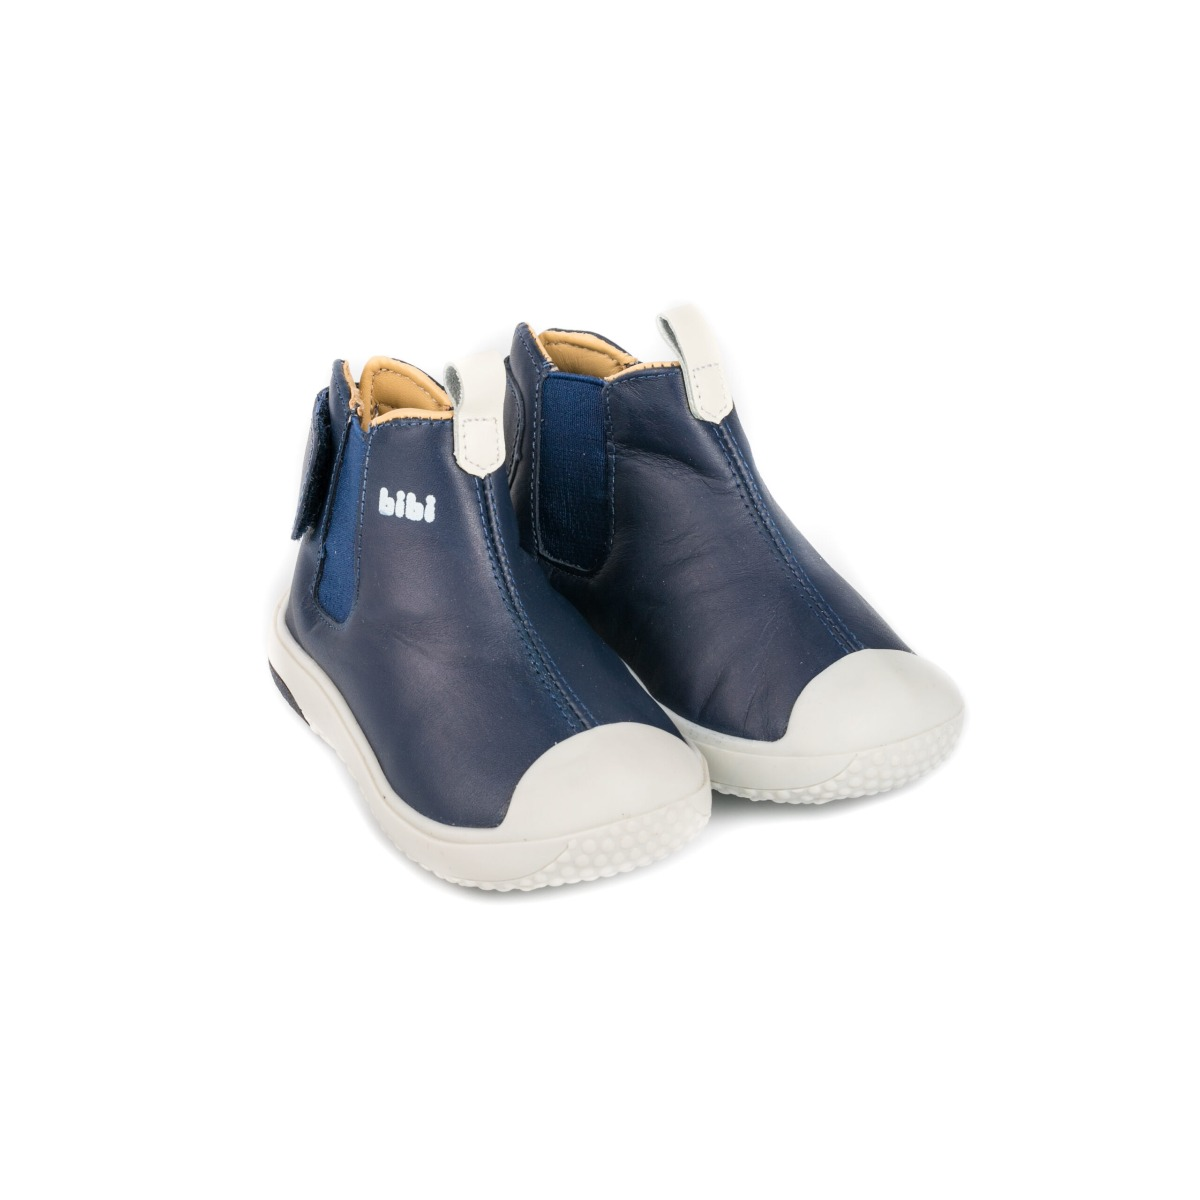 Ghete Bibi Shoes Prewalker, Bleumarin